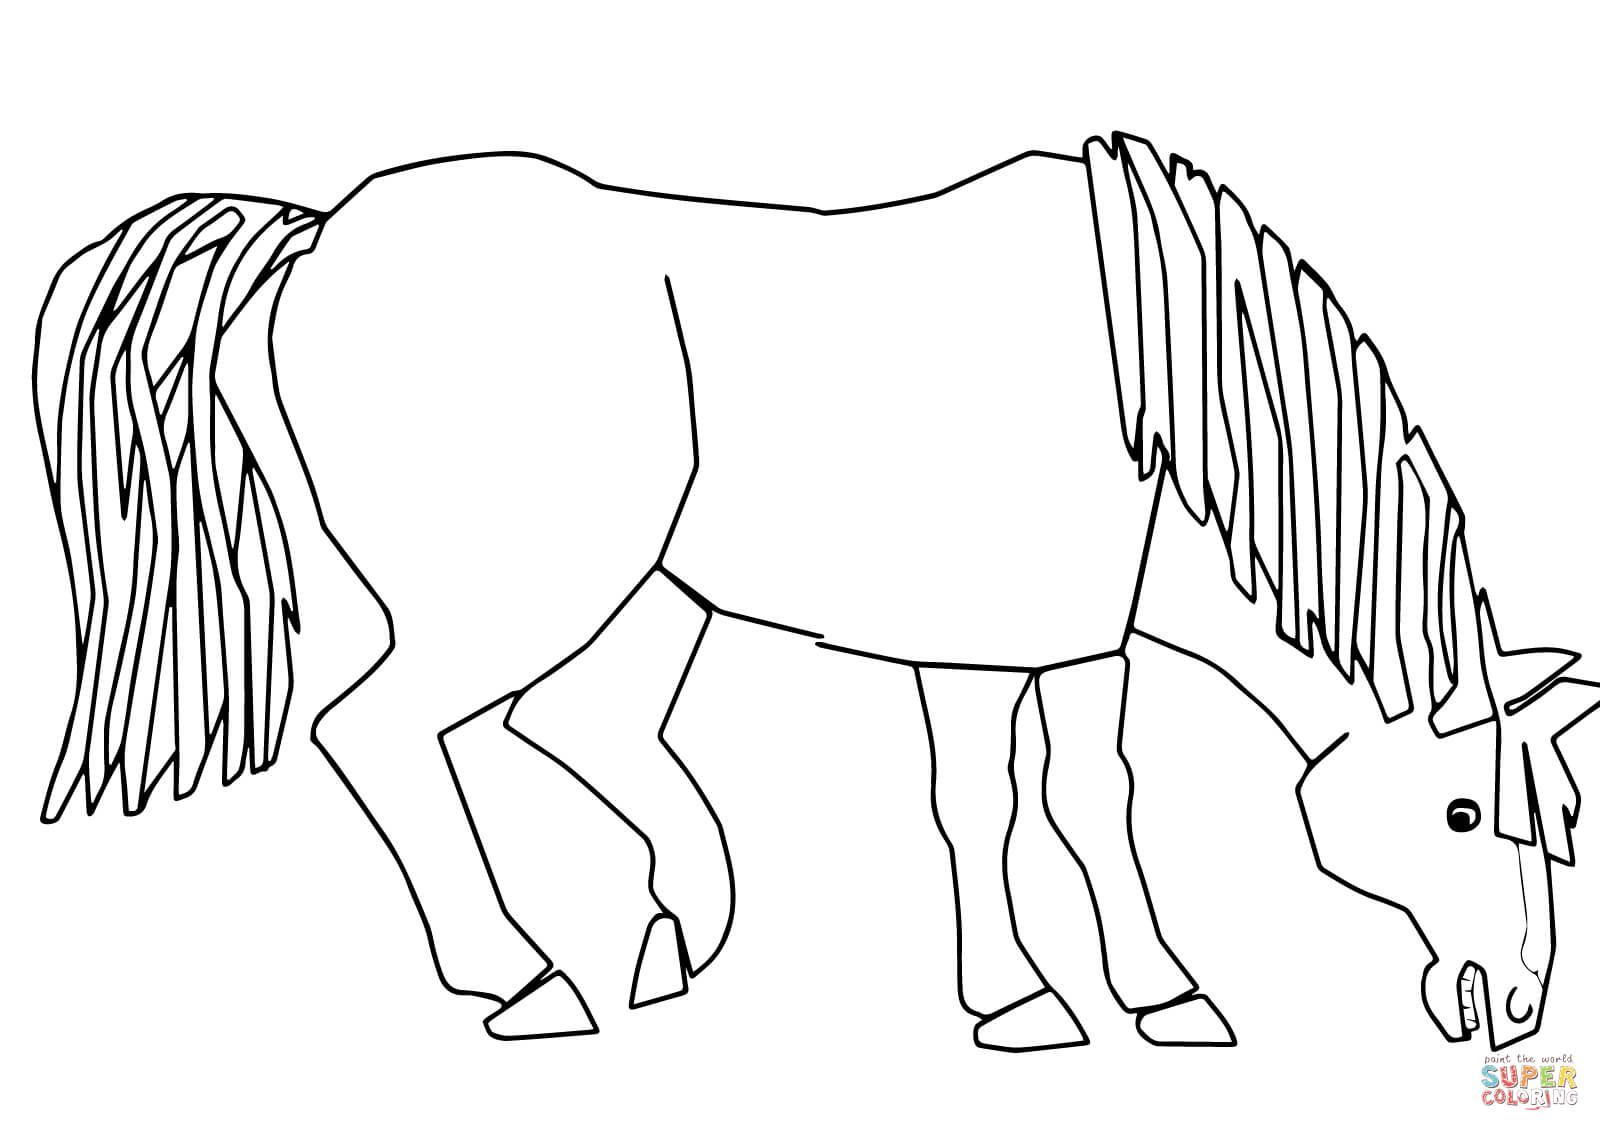 Blue Horse Blue Horse What Do You See Coloring Page From Brown